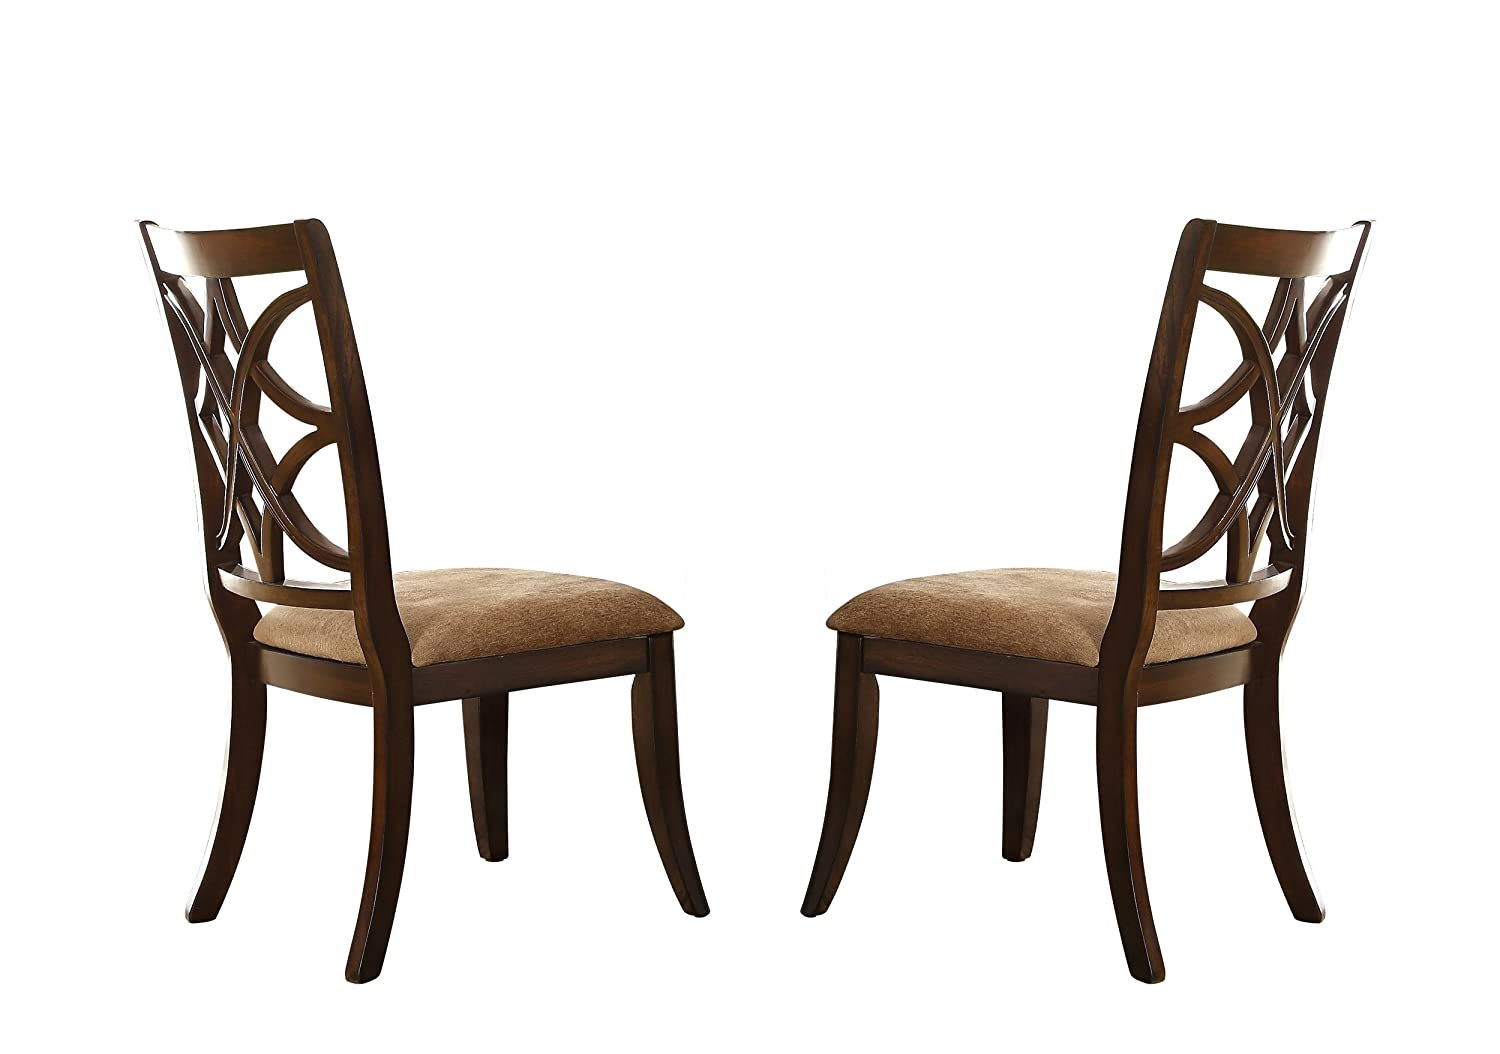 Homelegance Keegan Sophisticated Dining Chairs with Overlapping Design Backrest Set of 2 , Cherry